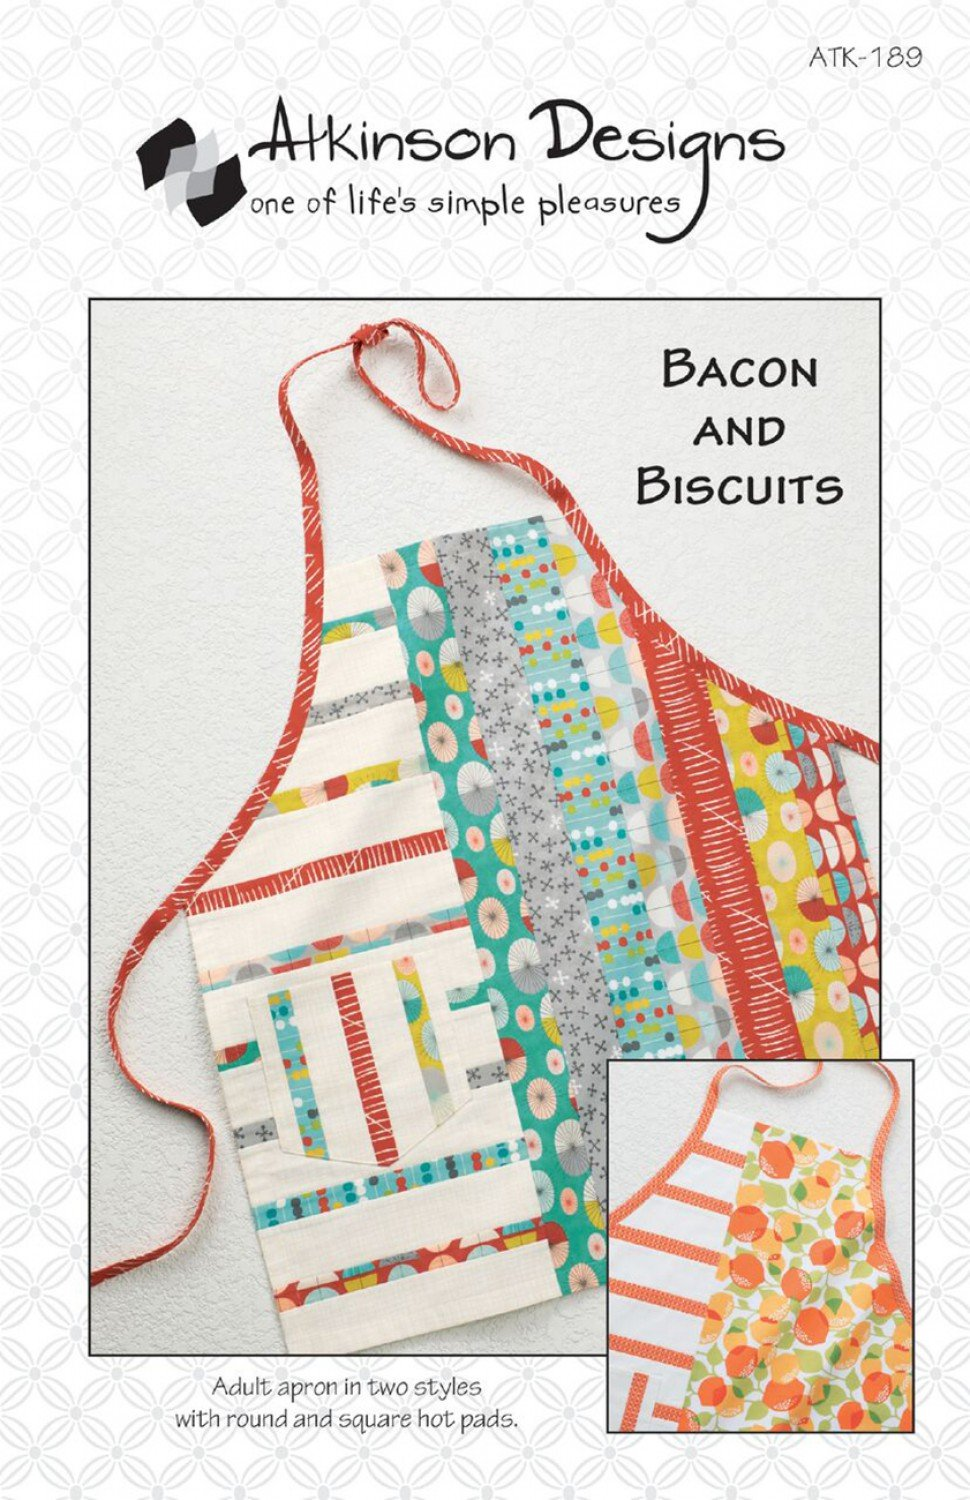 Bacon and Biscuits Apron Pattern- Atkinson Designs